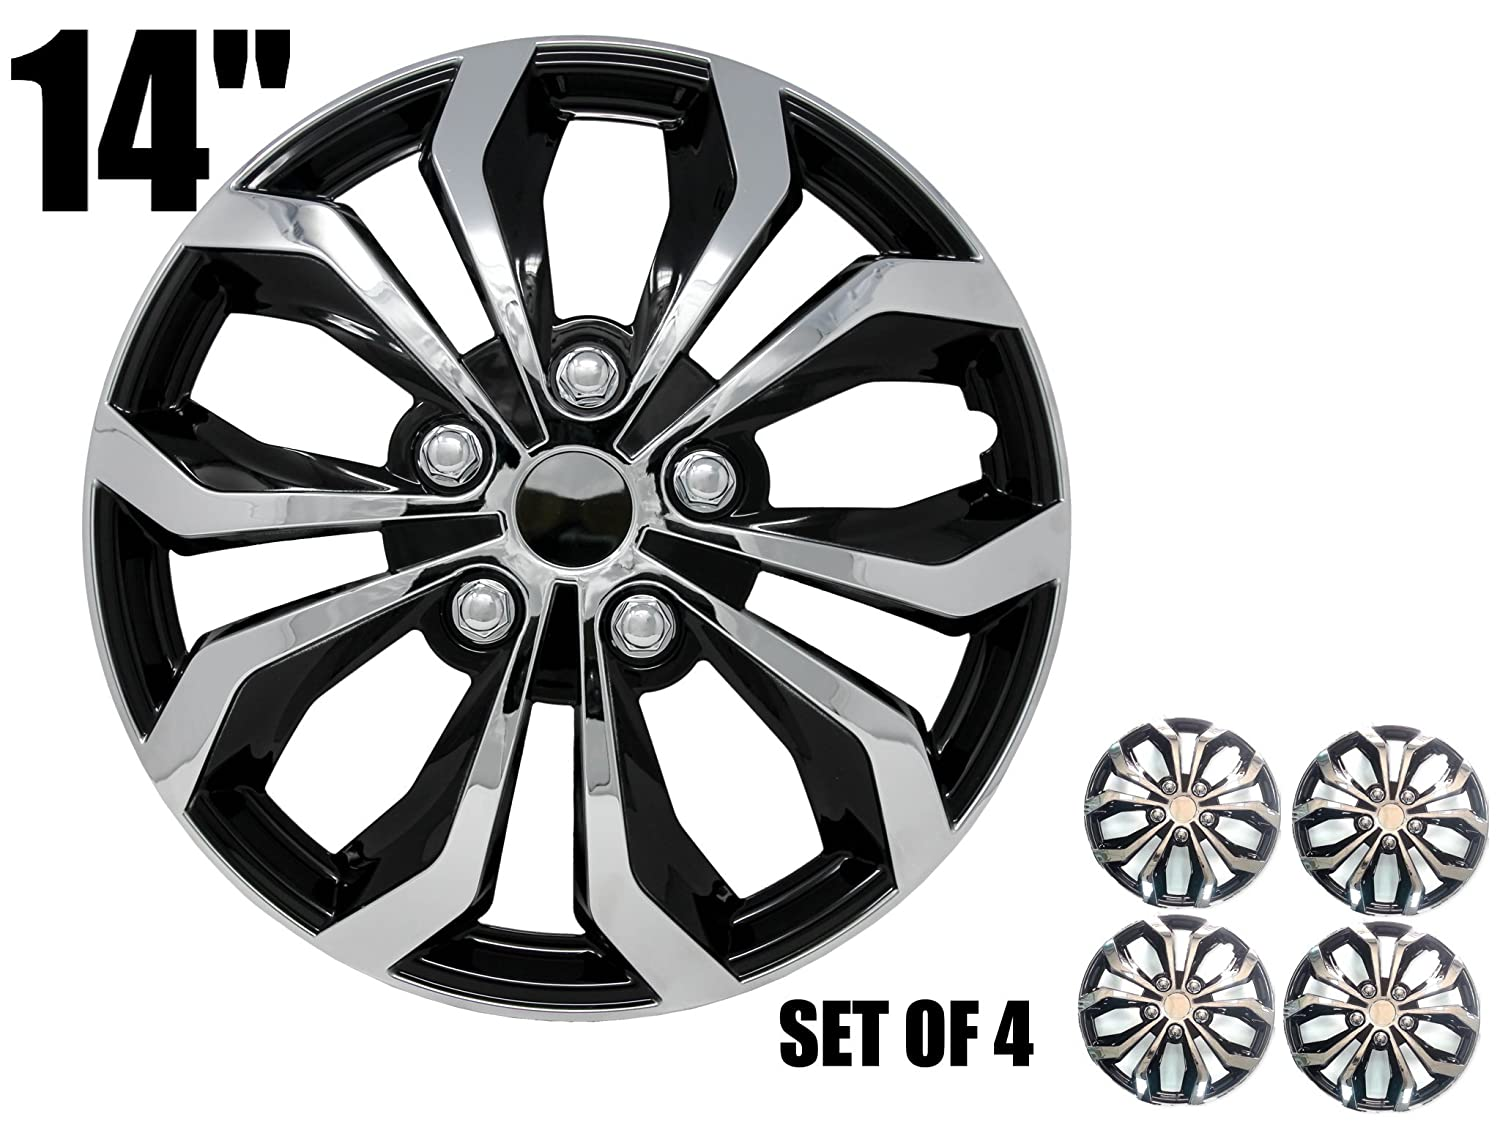 SUMEX SPA Performance Wheel Cover, Hub Cap Two Tone Black/Chrome Silver Finish, (Pack of 4)